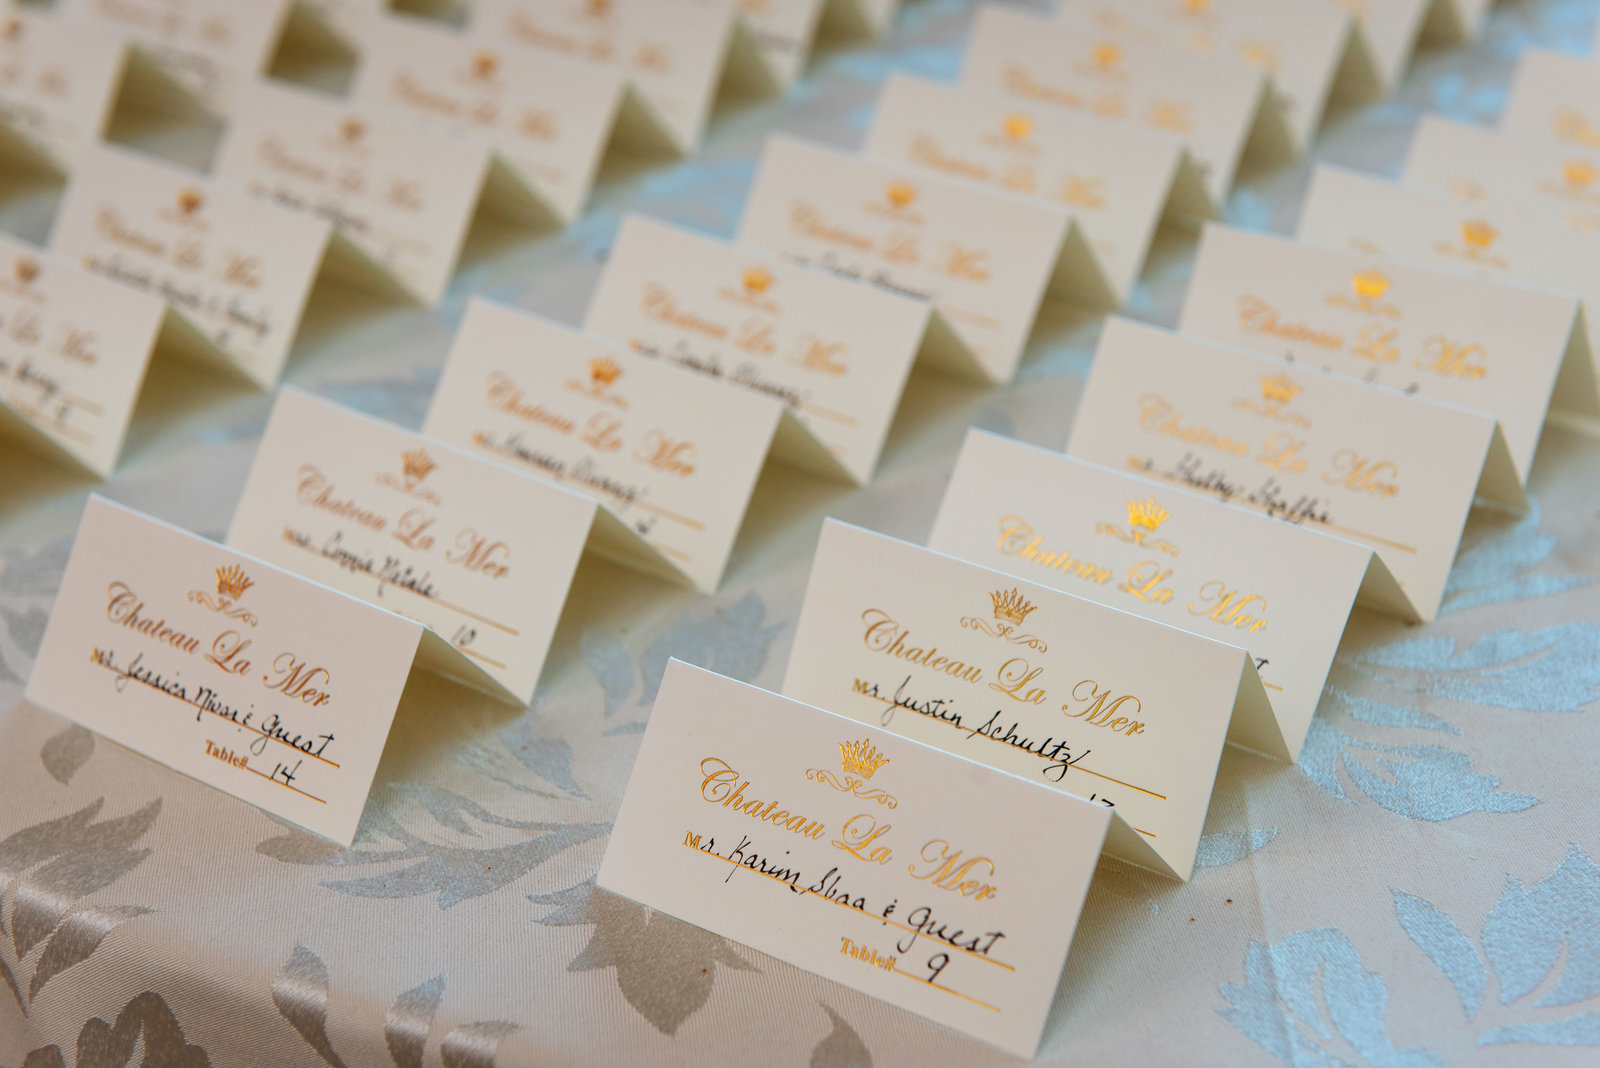 Table cards at Chateau La Mer